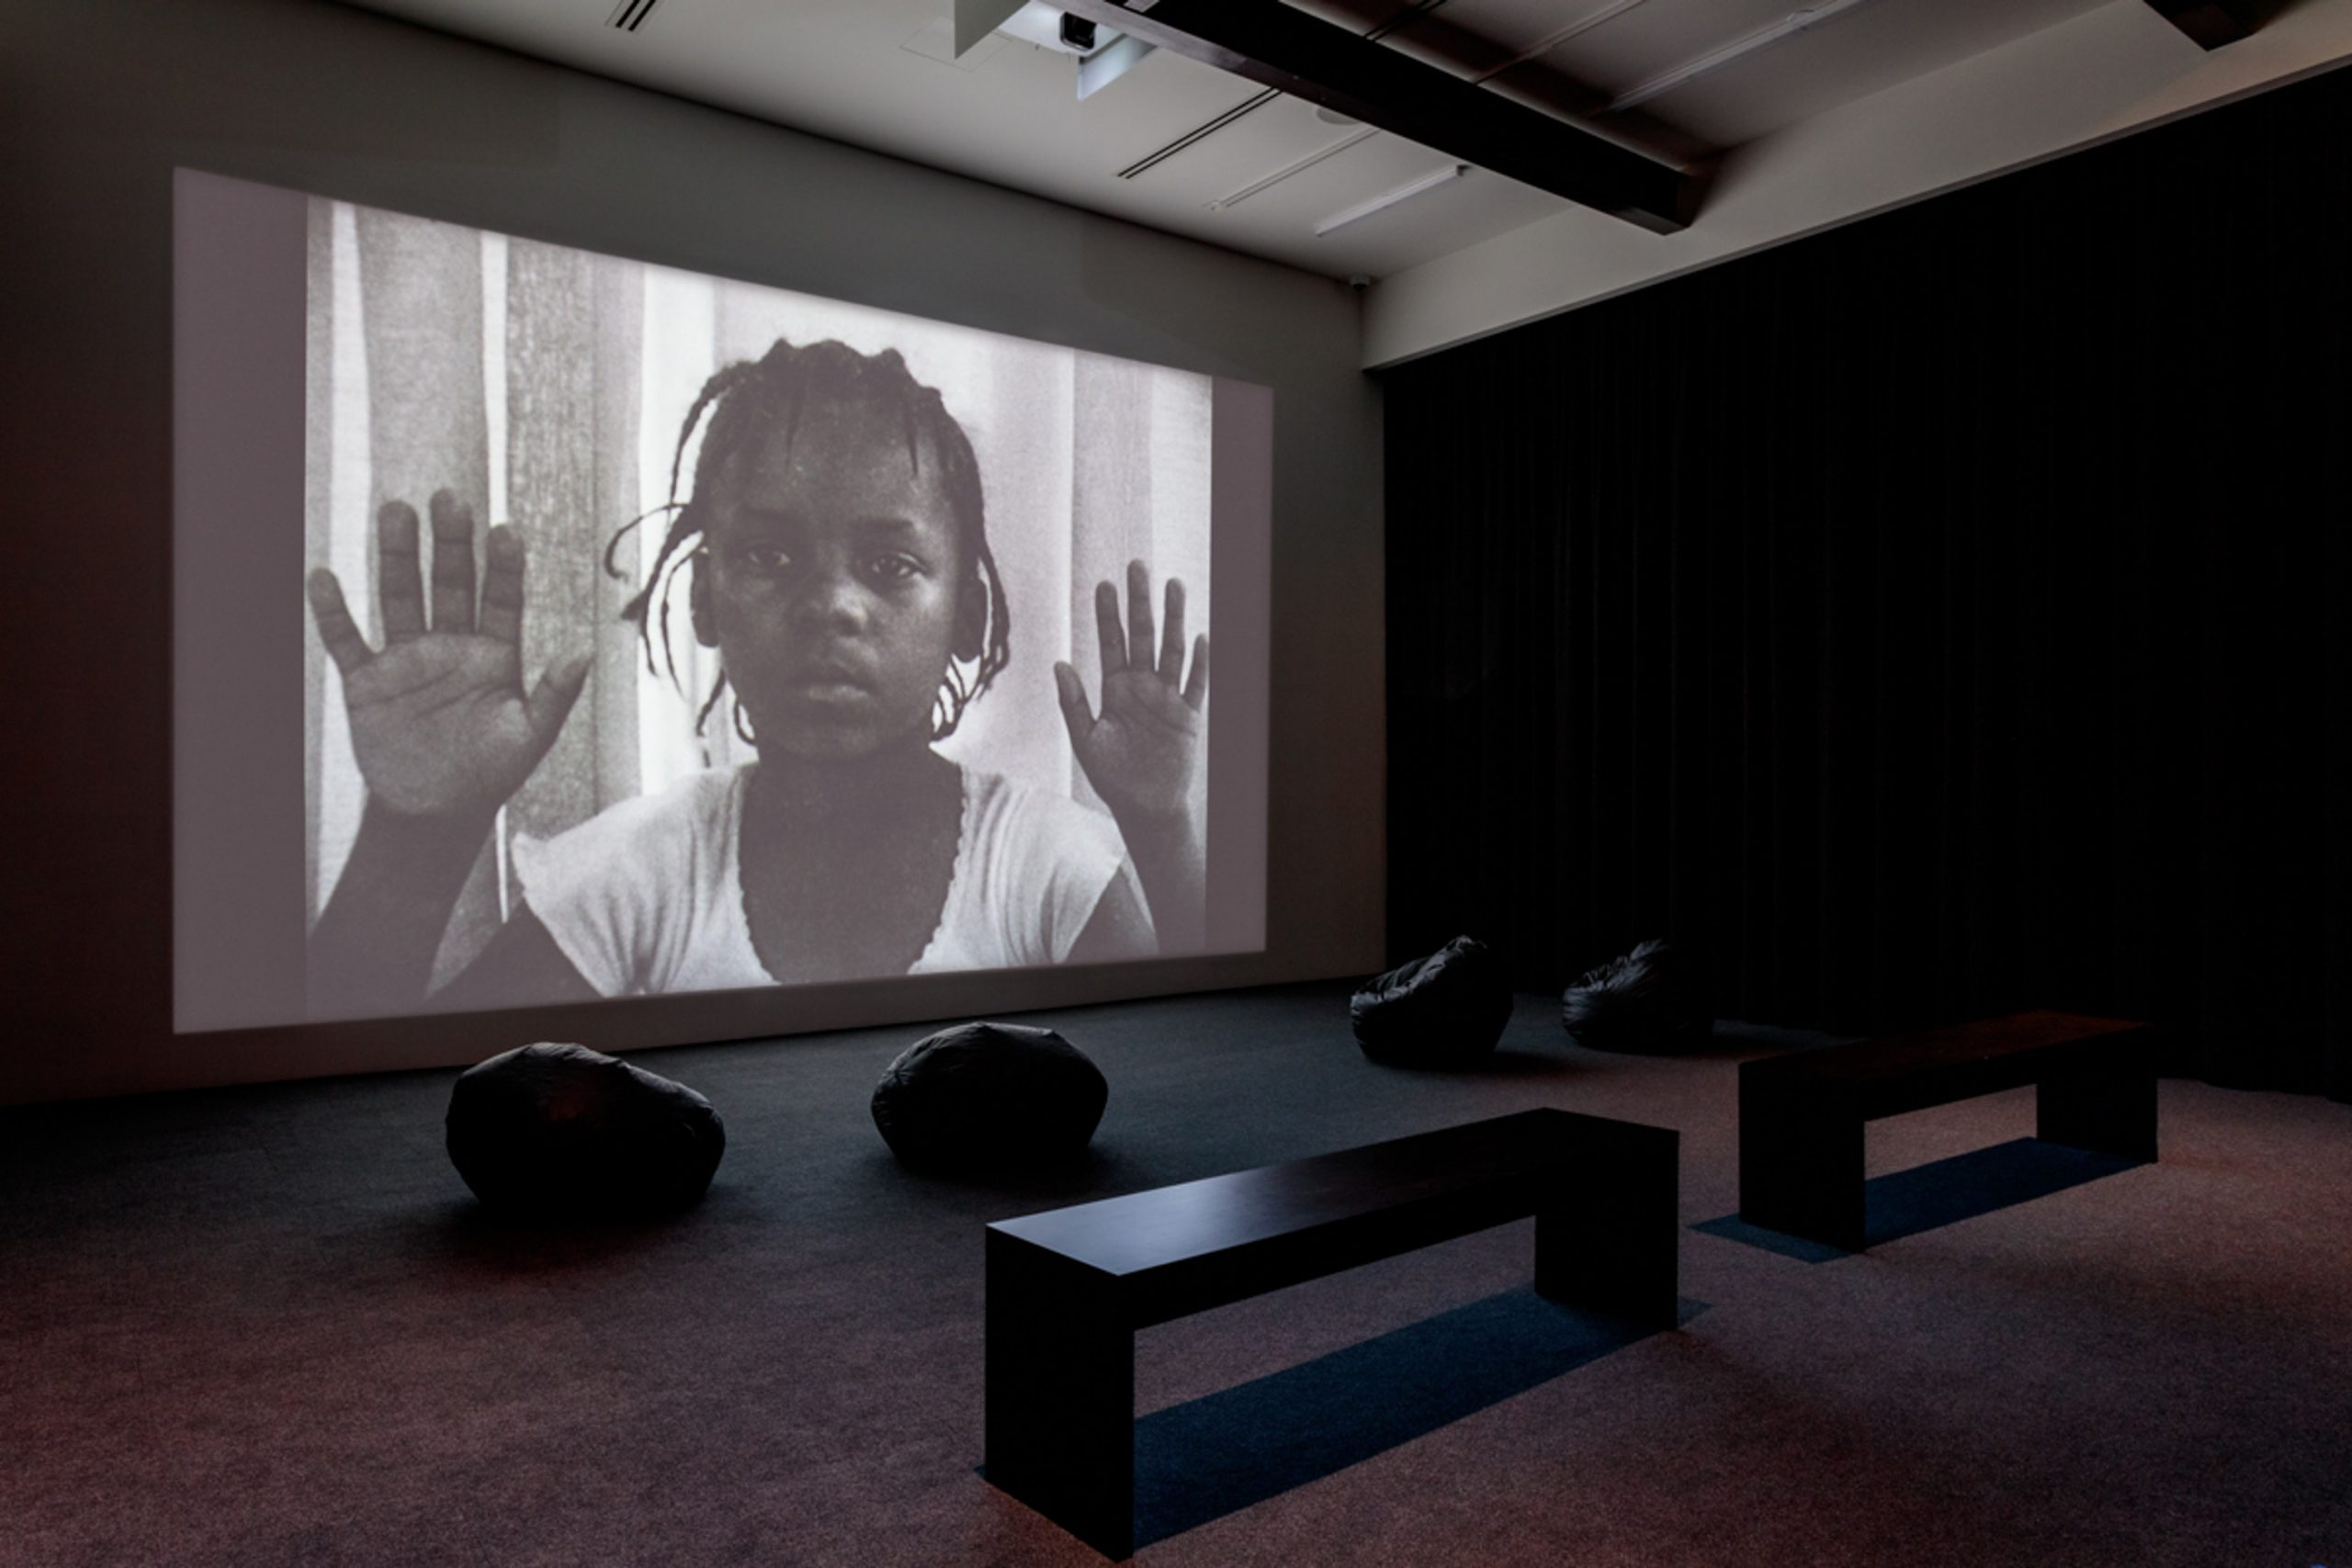 Installation view of Your Children Come Back to You (1979) by Alile Sharon Larkin in Time is Running Out of Time: Experimental Film and Video from the L.A. Rebellion and Today at Art + Practice. 2 February - 14 September 2019. Photo by Joshua White.